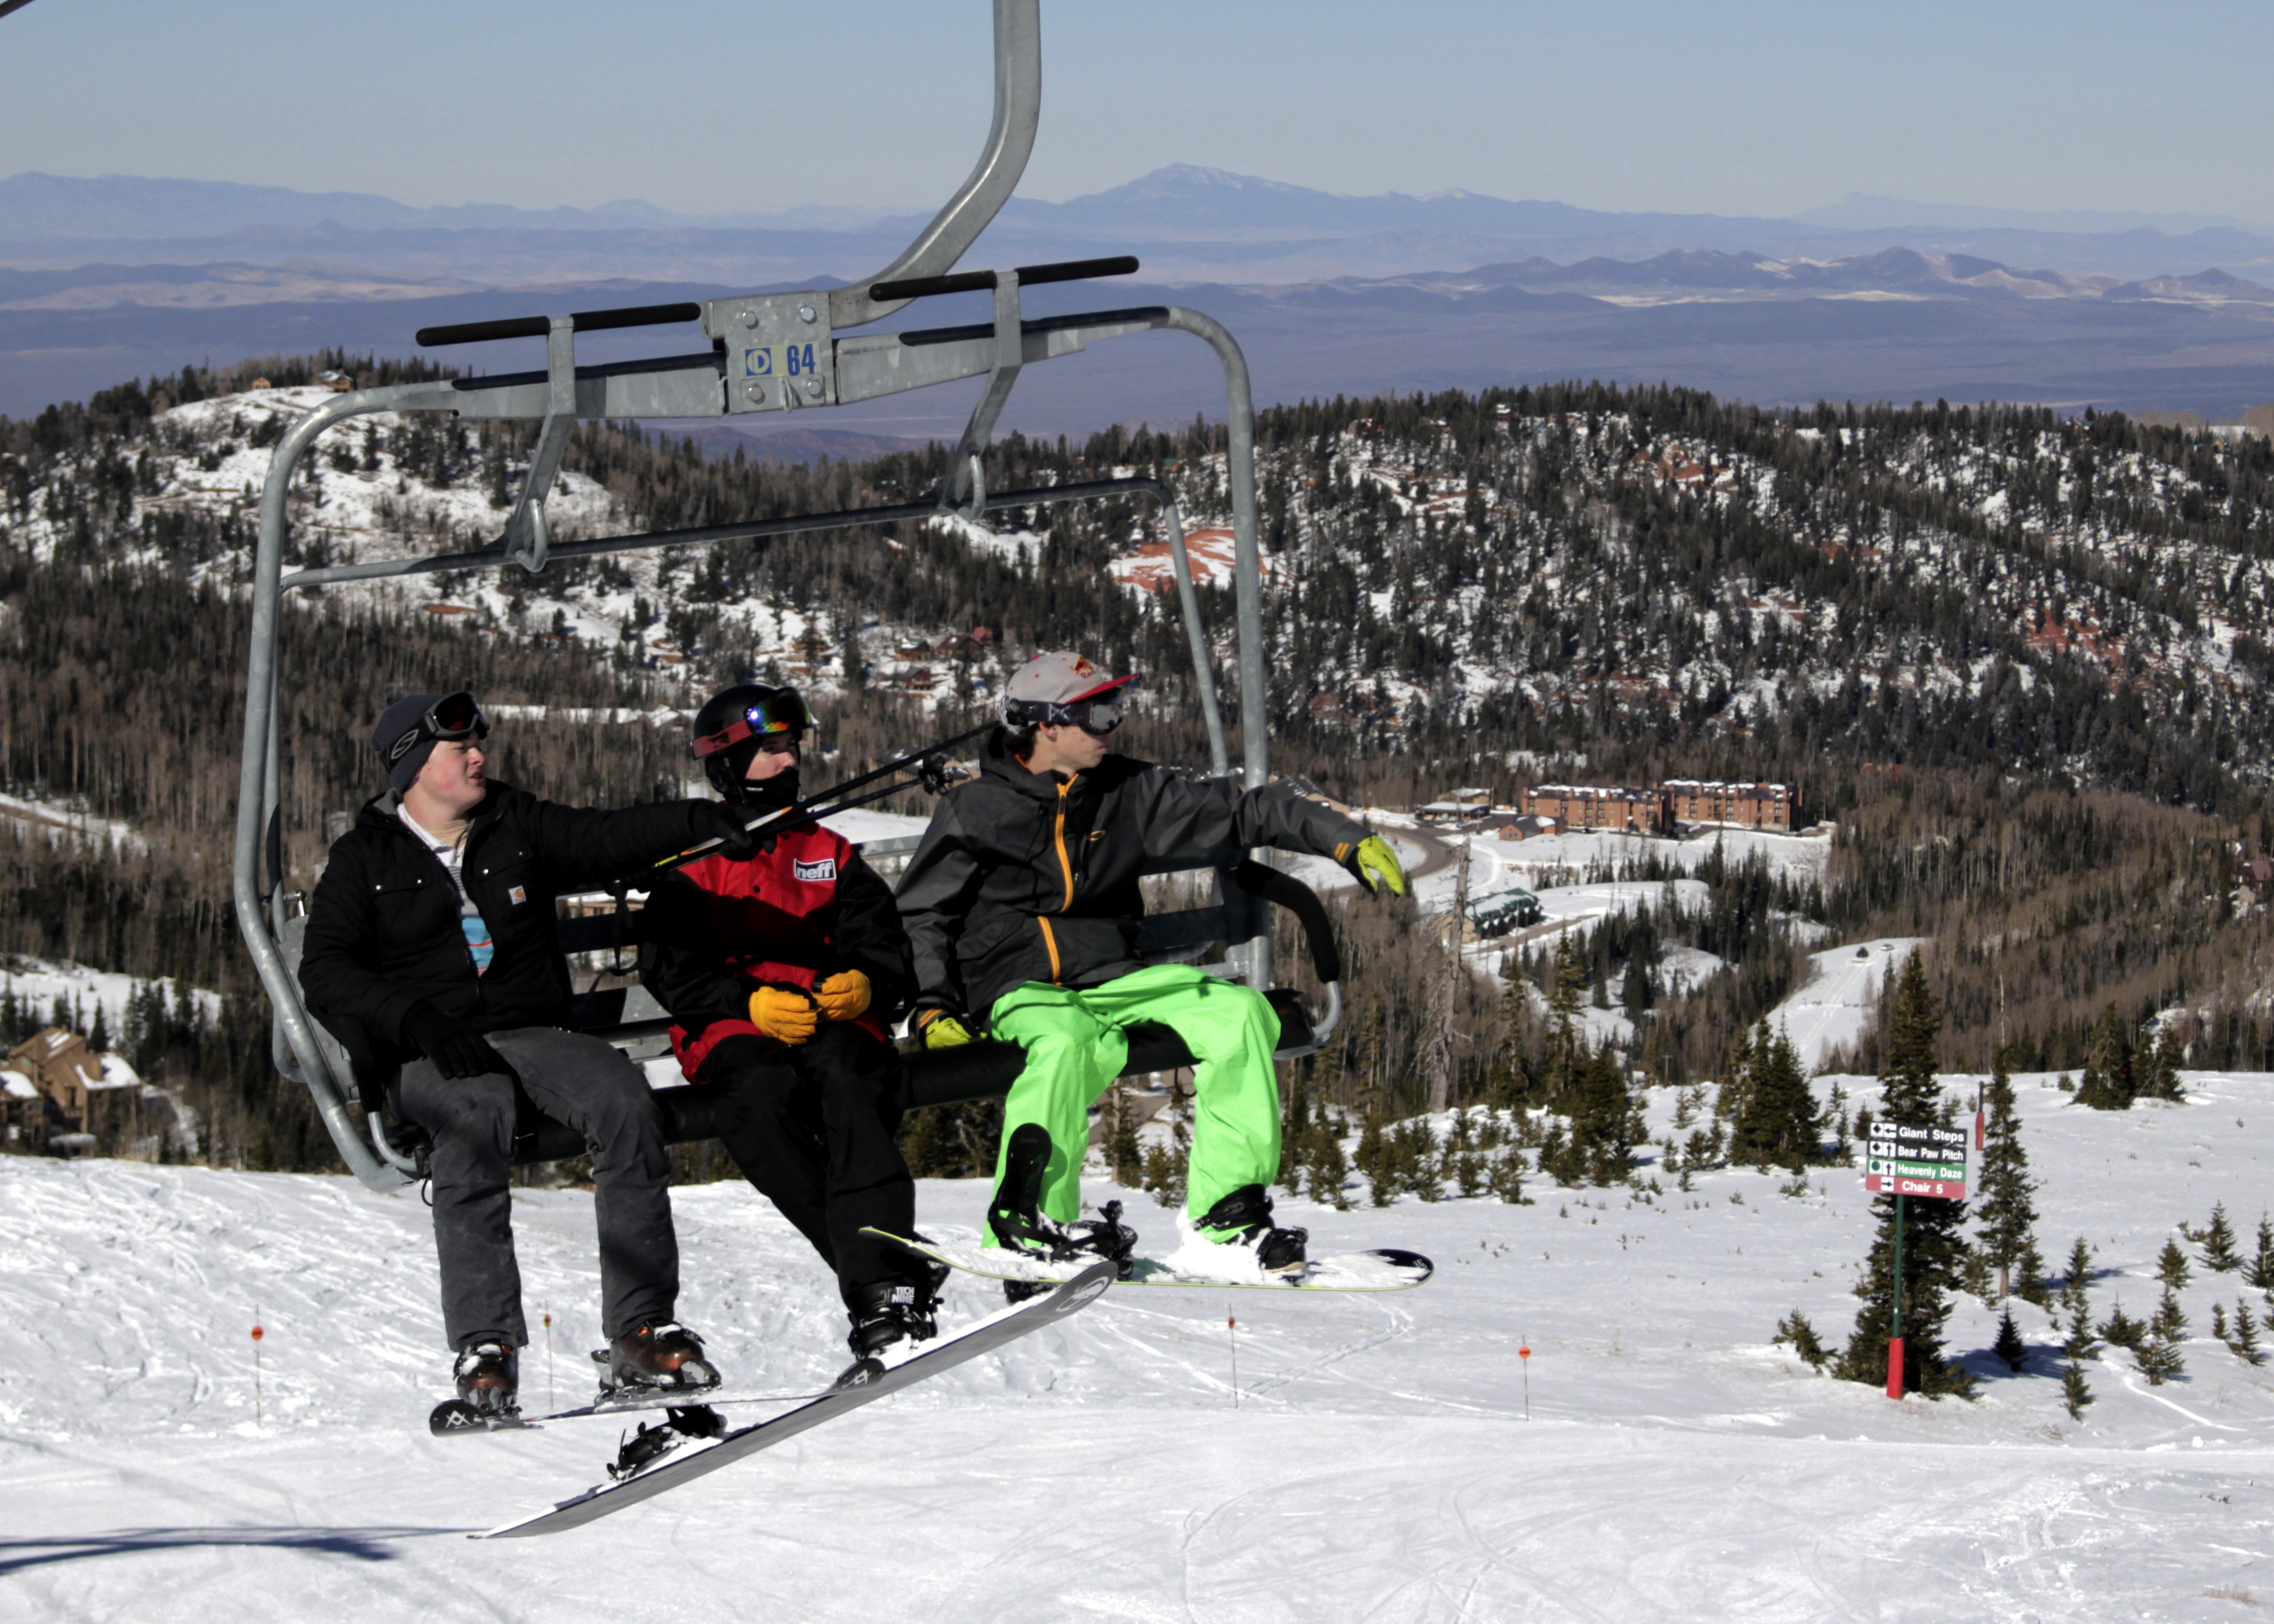 Skiers and boarders ride the lift to the top of the summit, Brian Head Resort, Brian Head, Utah, Nov. 21, 2015 | Photo by Carin Miller, St. George News